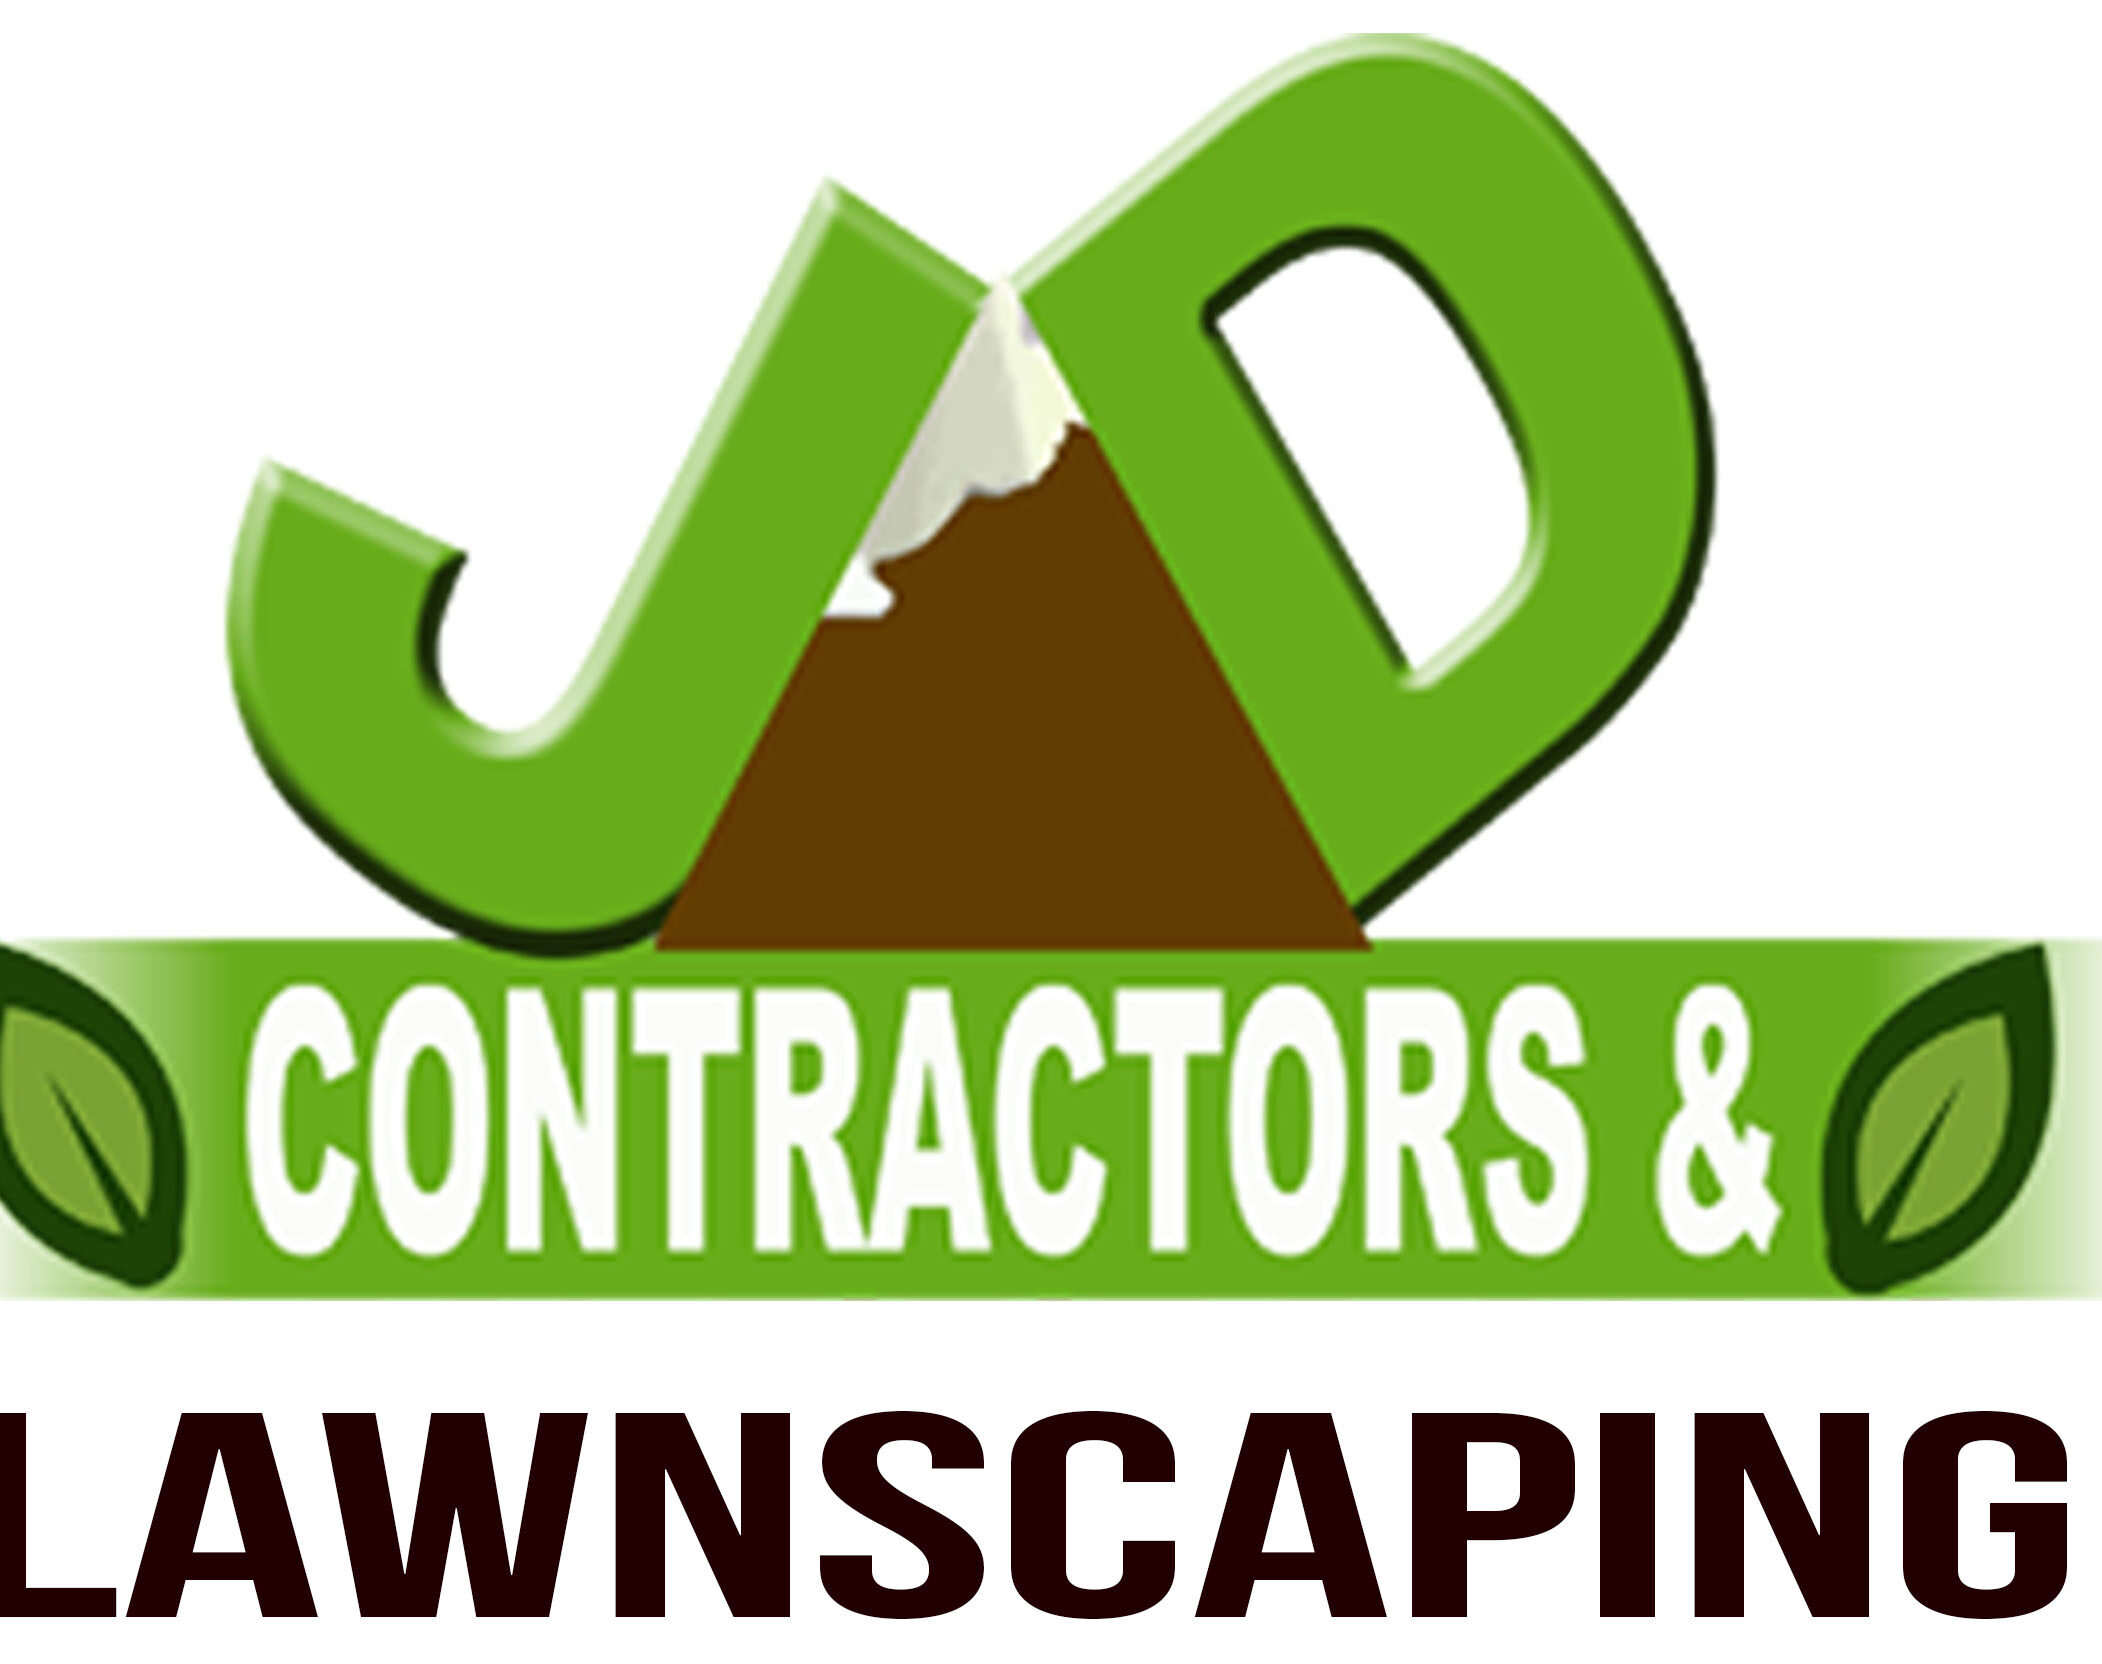 JD Contractors & Lawnscaping